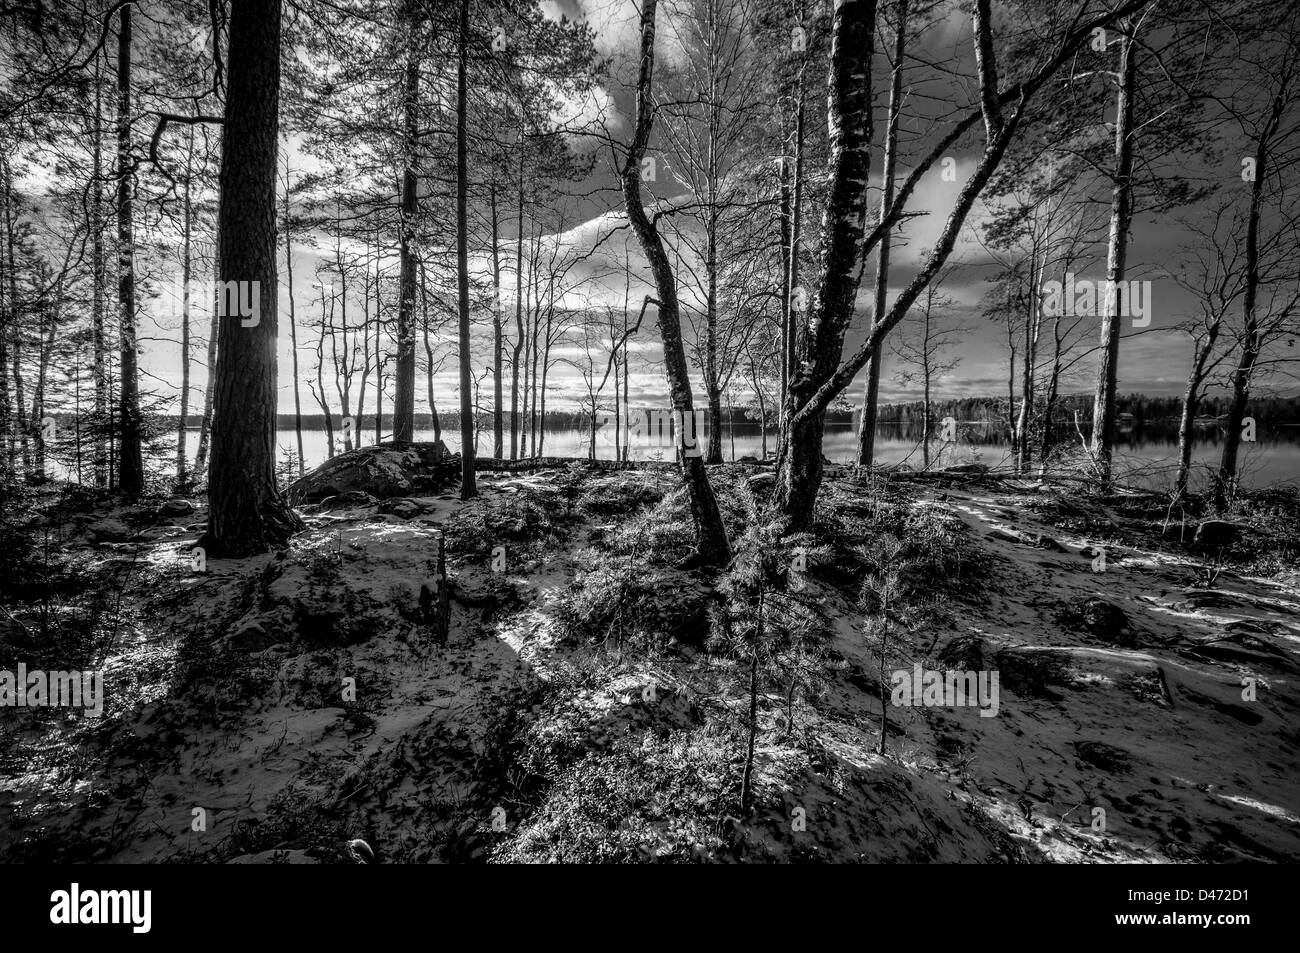 First snow on the ground in forest with a lake on the background - Stock Image